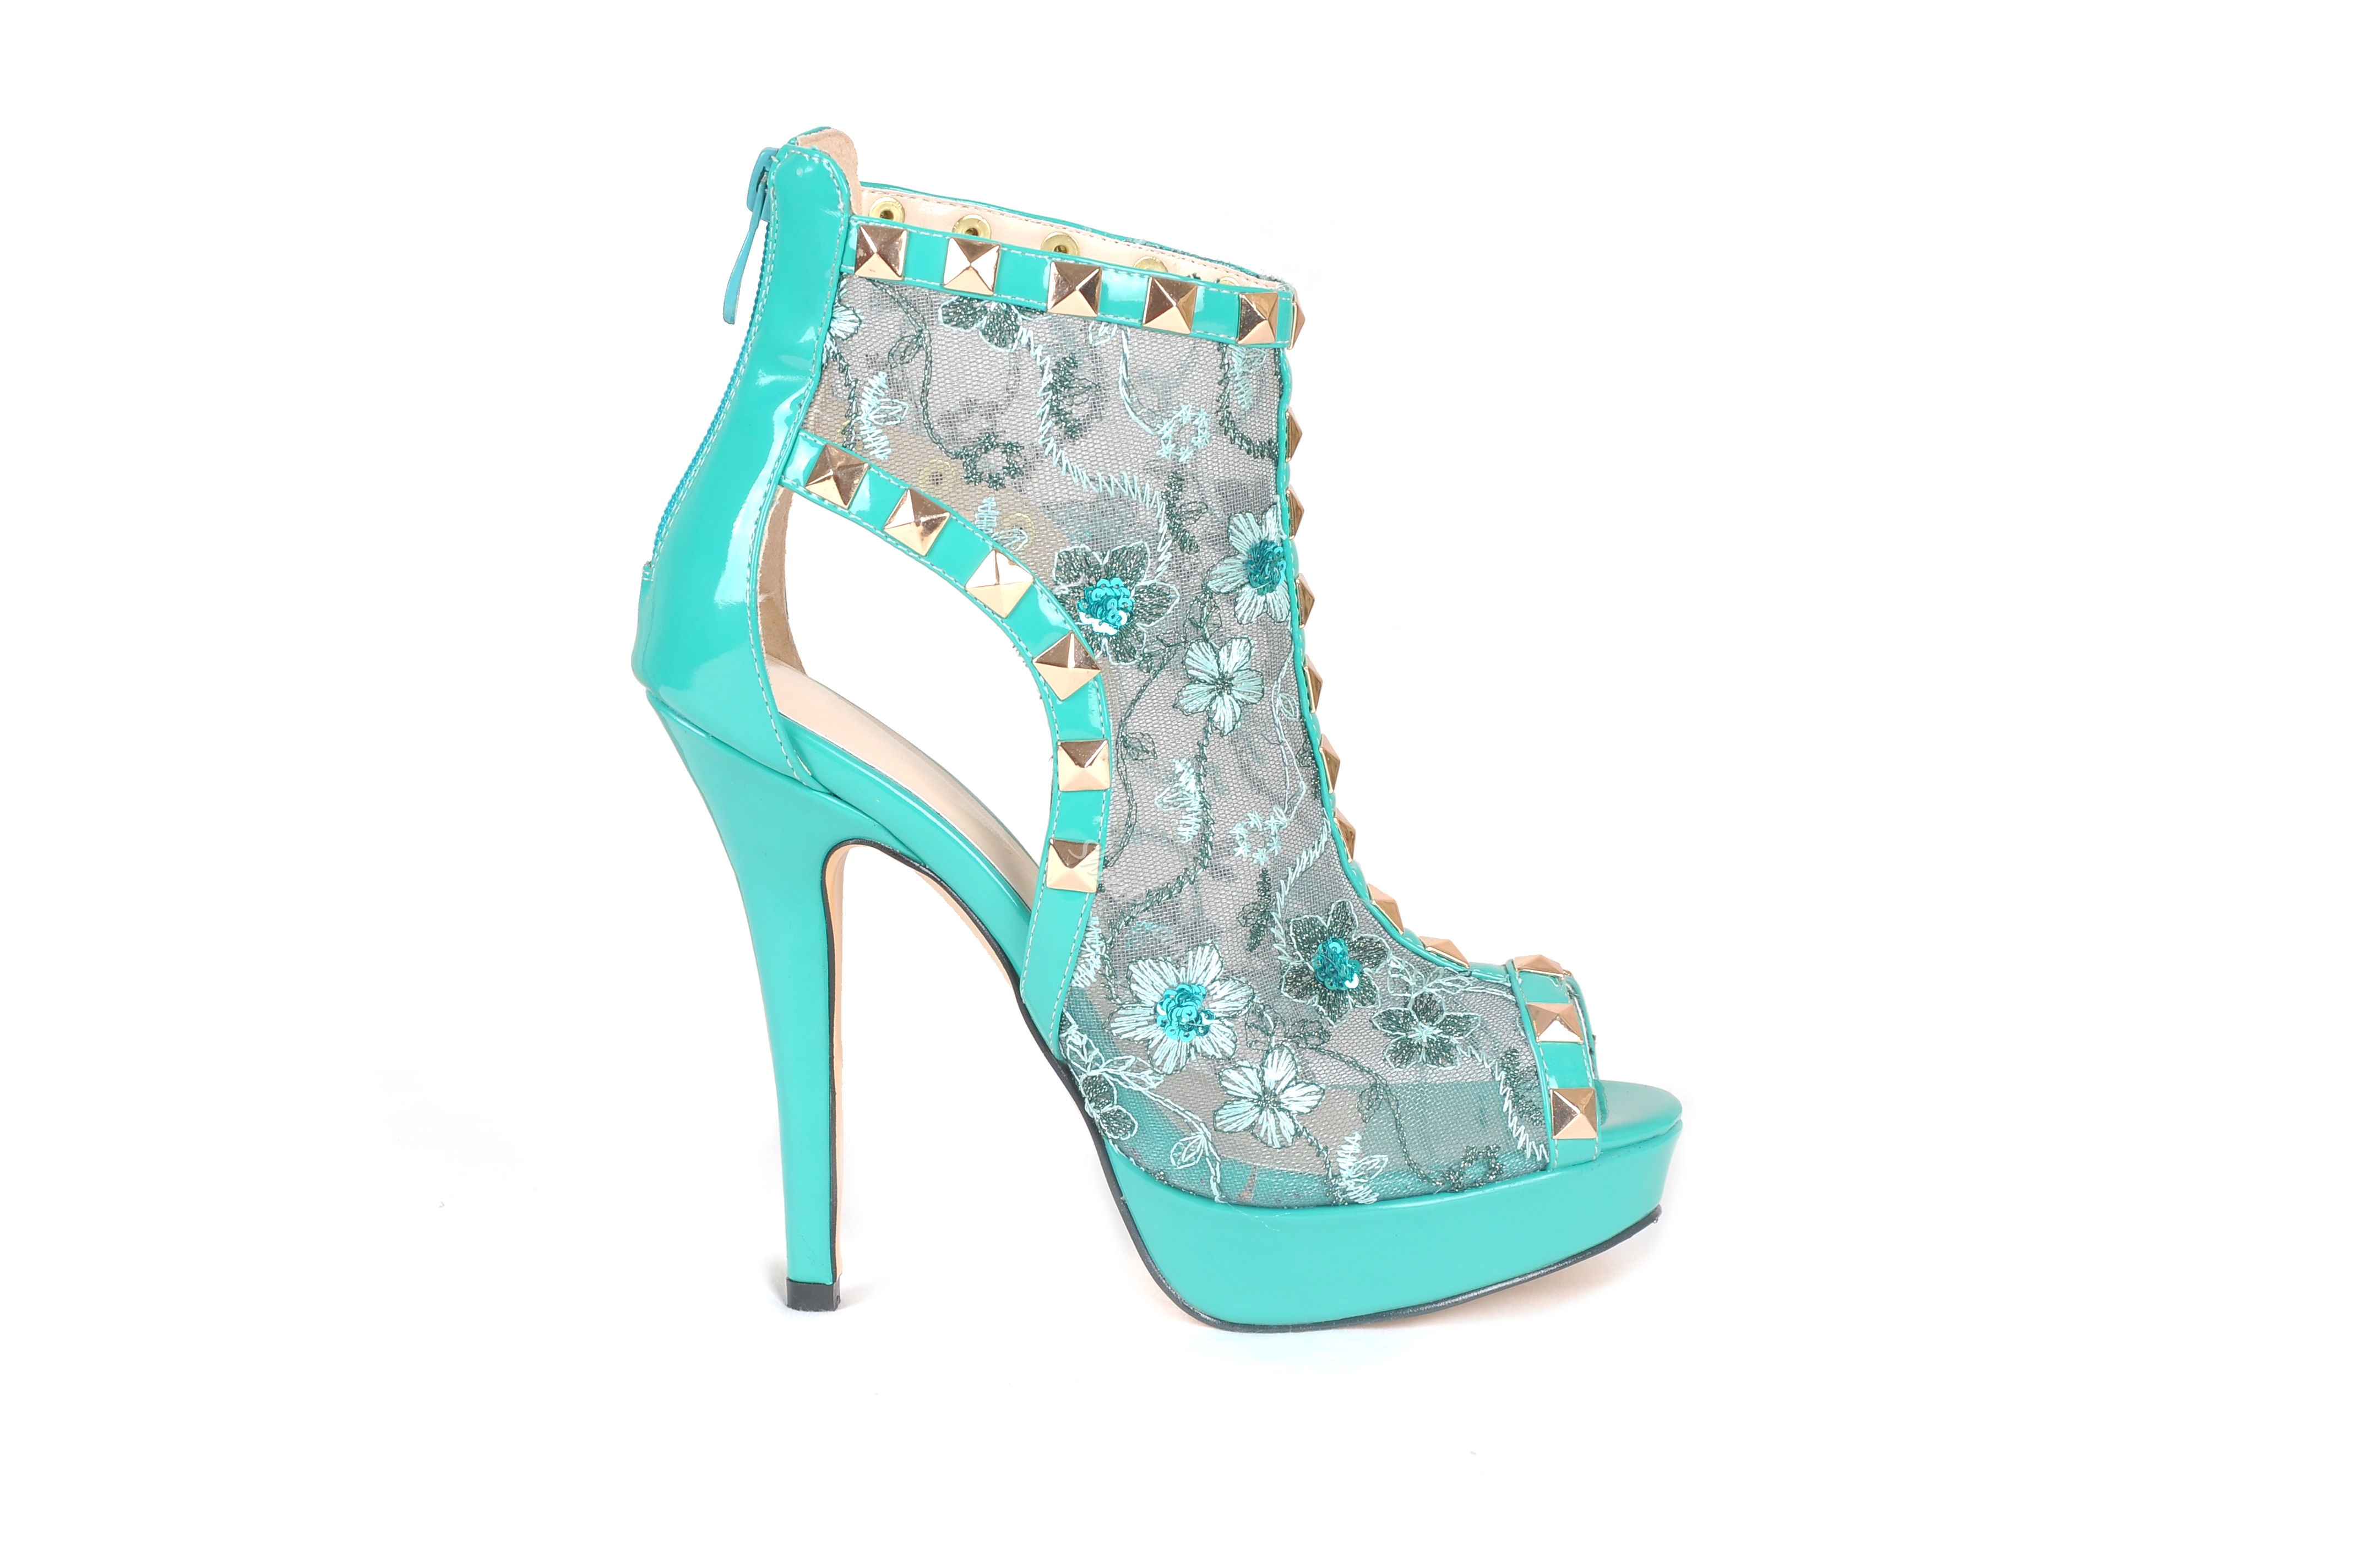 Large Size Blue Peep Toe Rivet Dress Sandals